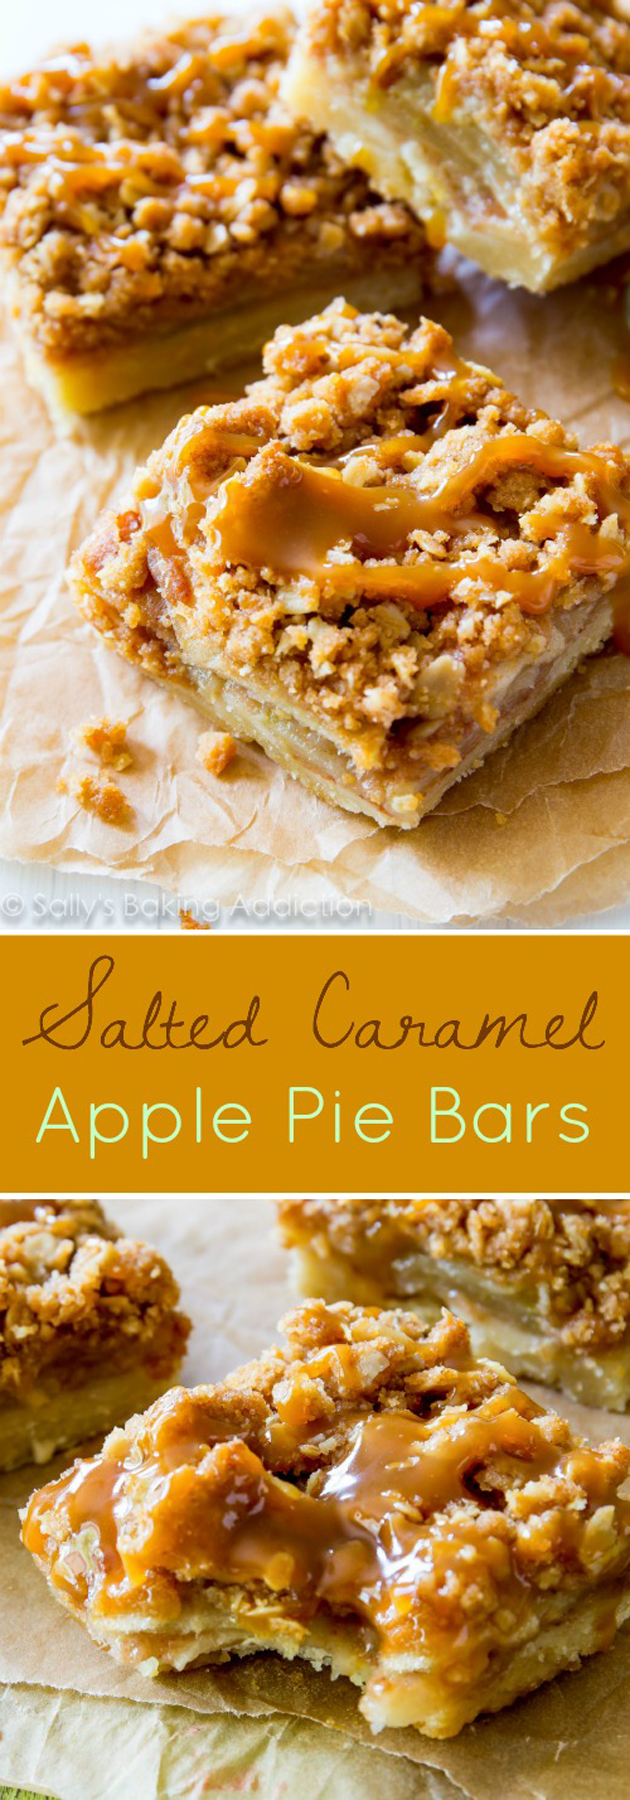 Salted-Caramel-Apple-Pie-Bars- sallys baking addiction